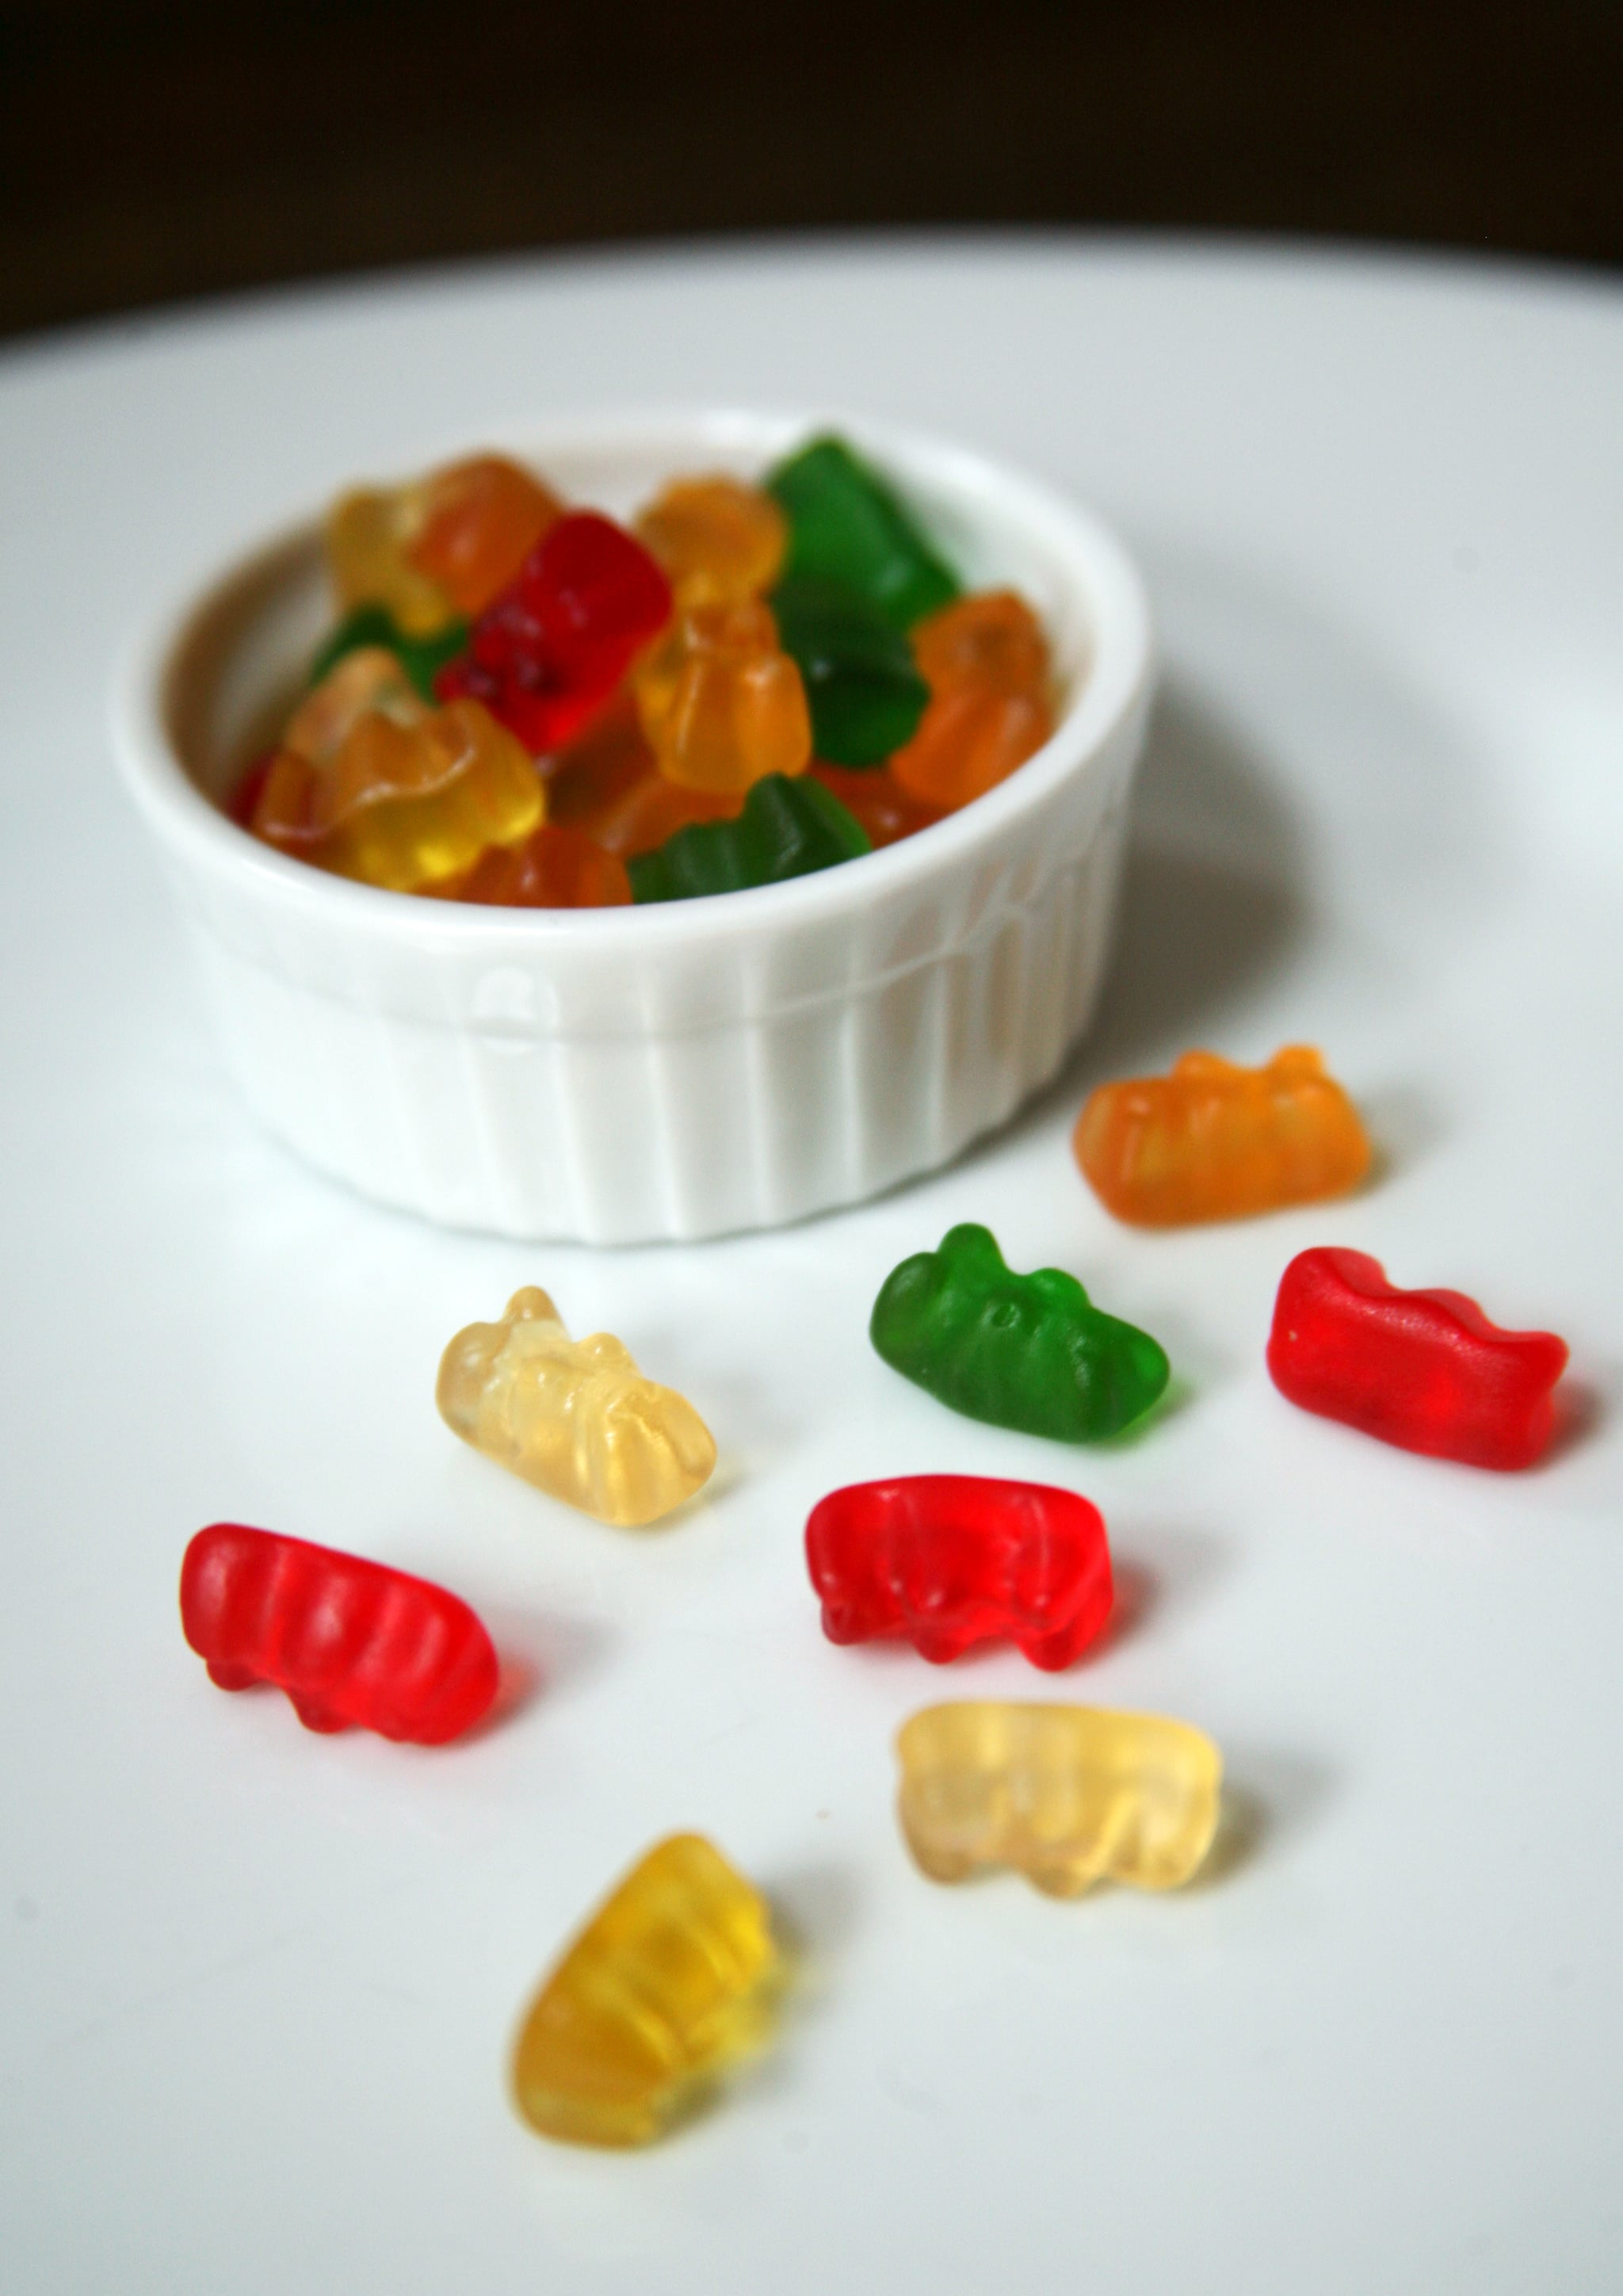 Haribo gummy bears are just one of many products that thomas - Share This Link